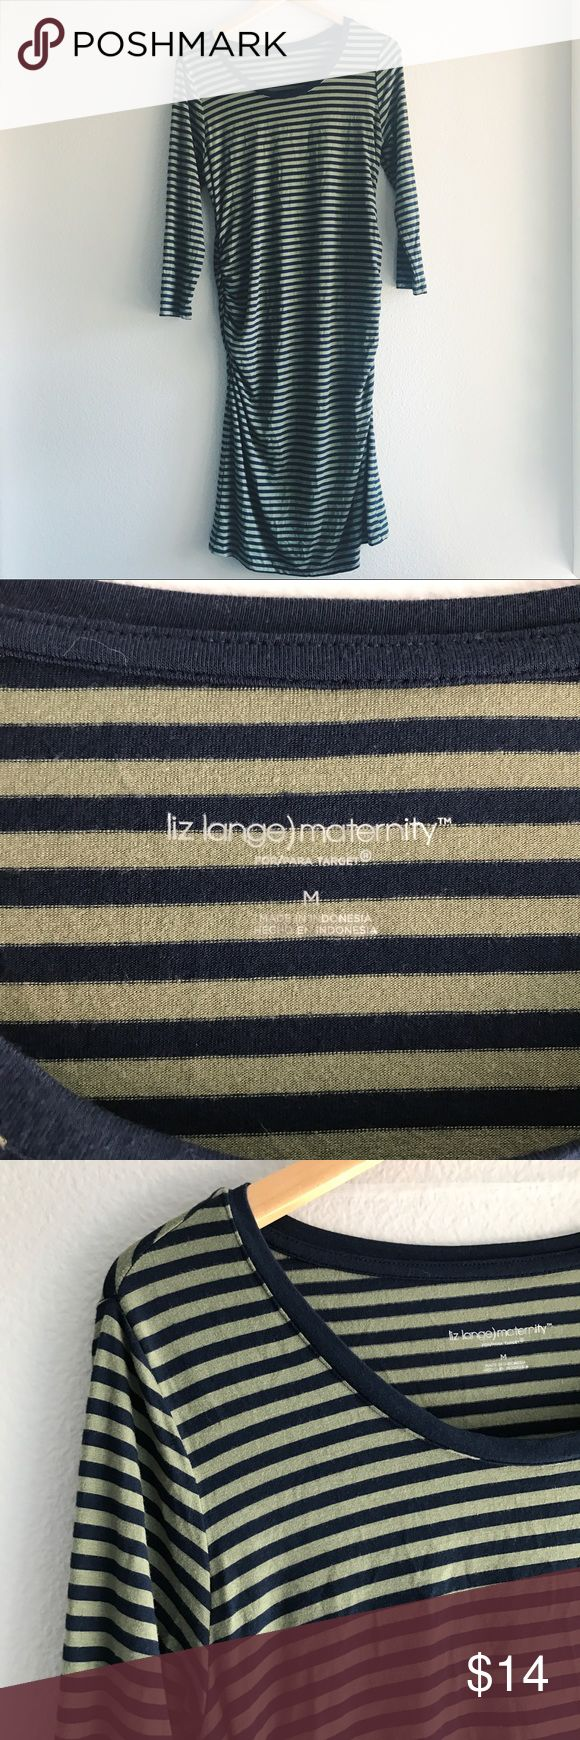 Liz Lange for Target • Striped Maternity Dress Liz Lange Maternity for Target green and navy striped Midi dress with ruching along the sides. Fitted. 3/4 sleeves. Excellent condition- like new. 0831gw60 Liz Lange for Target Dresses Midi